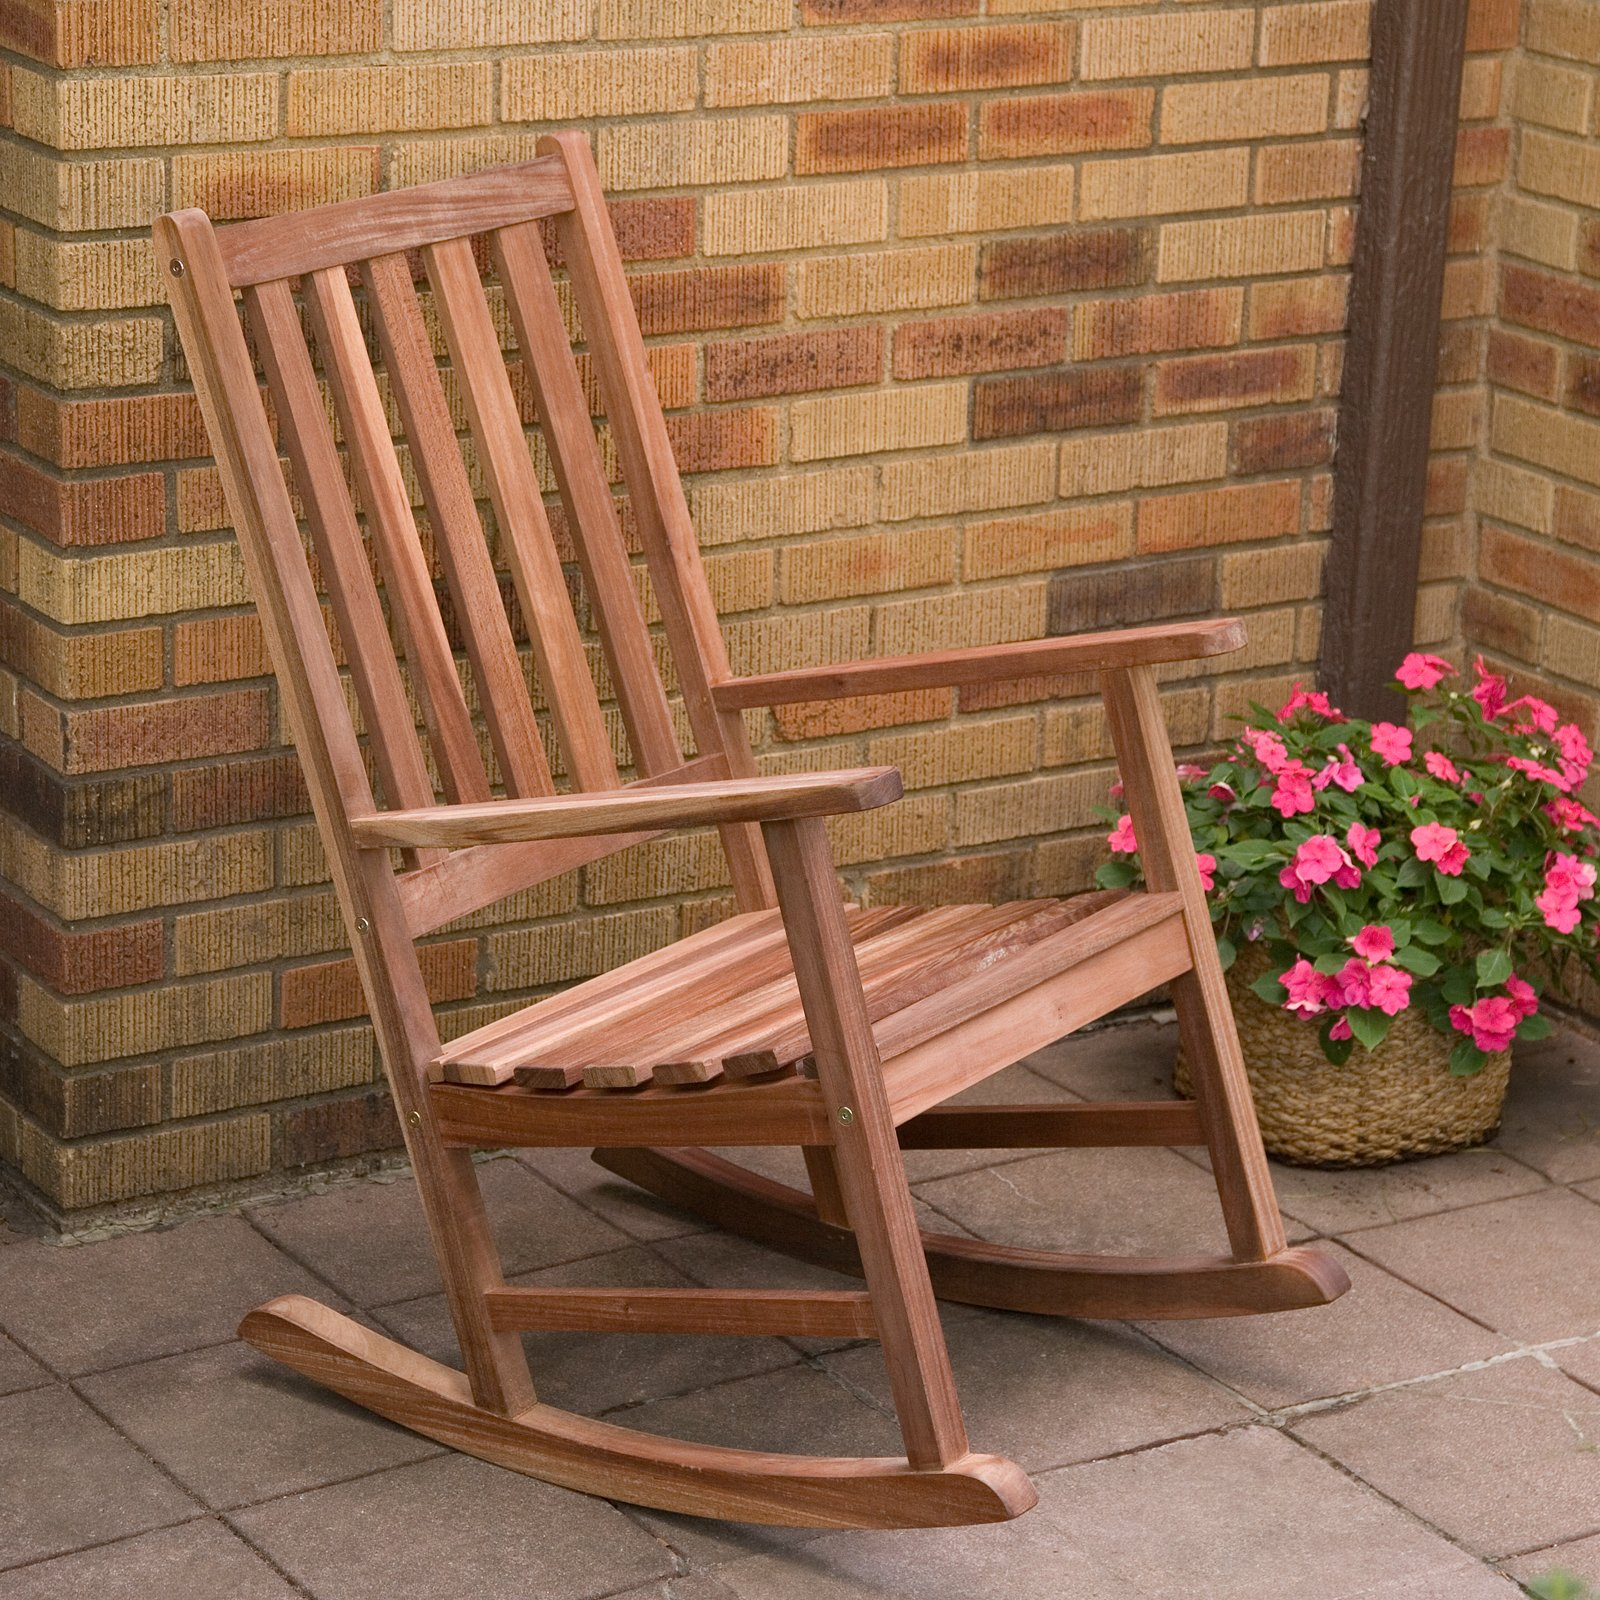 10+ Outdoor Rocking Chair Ideas